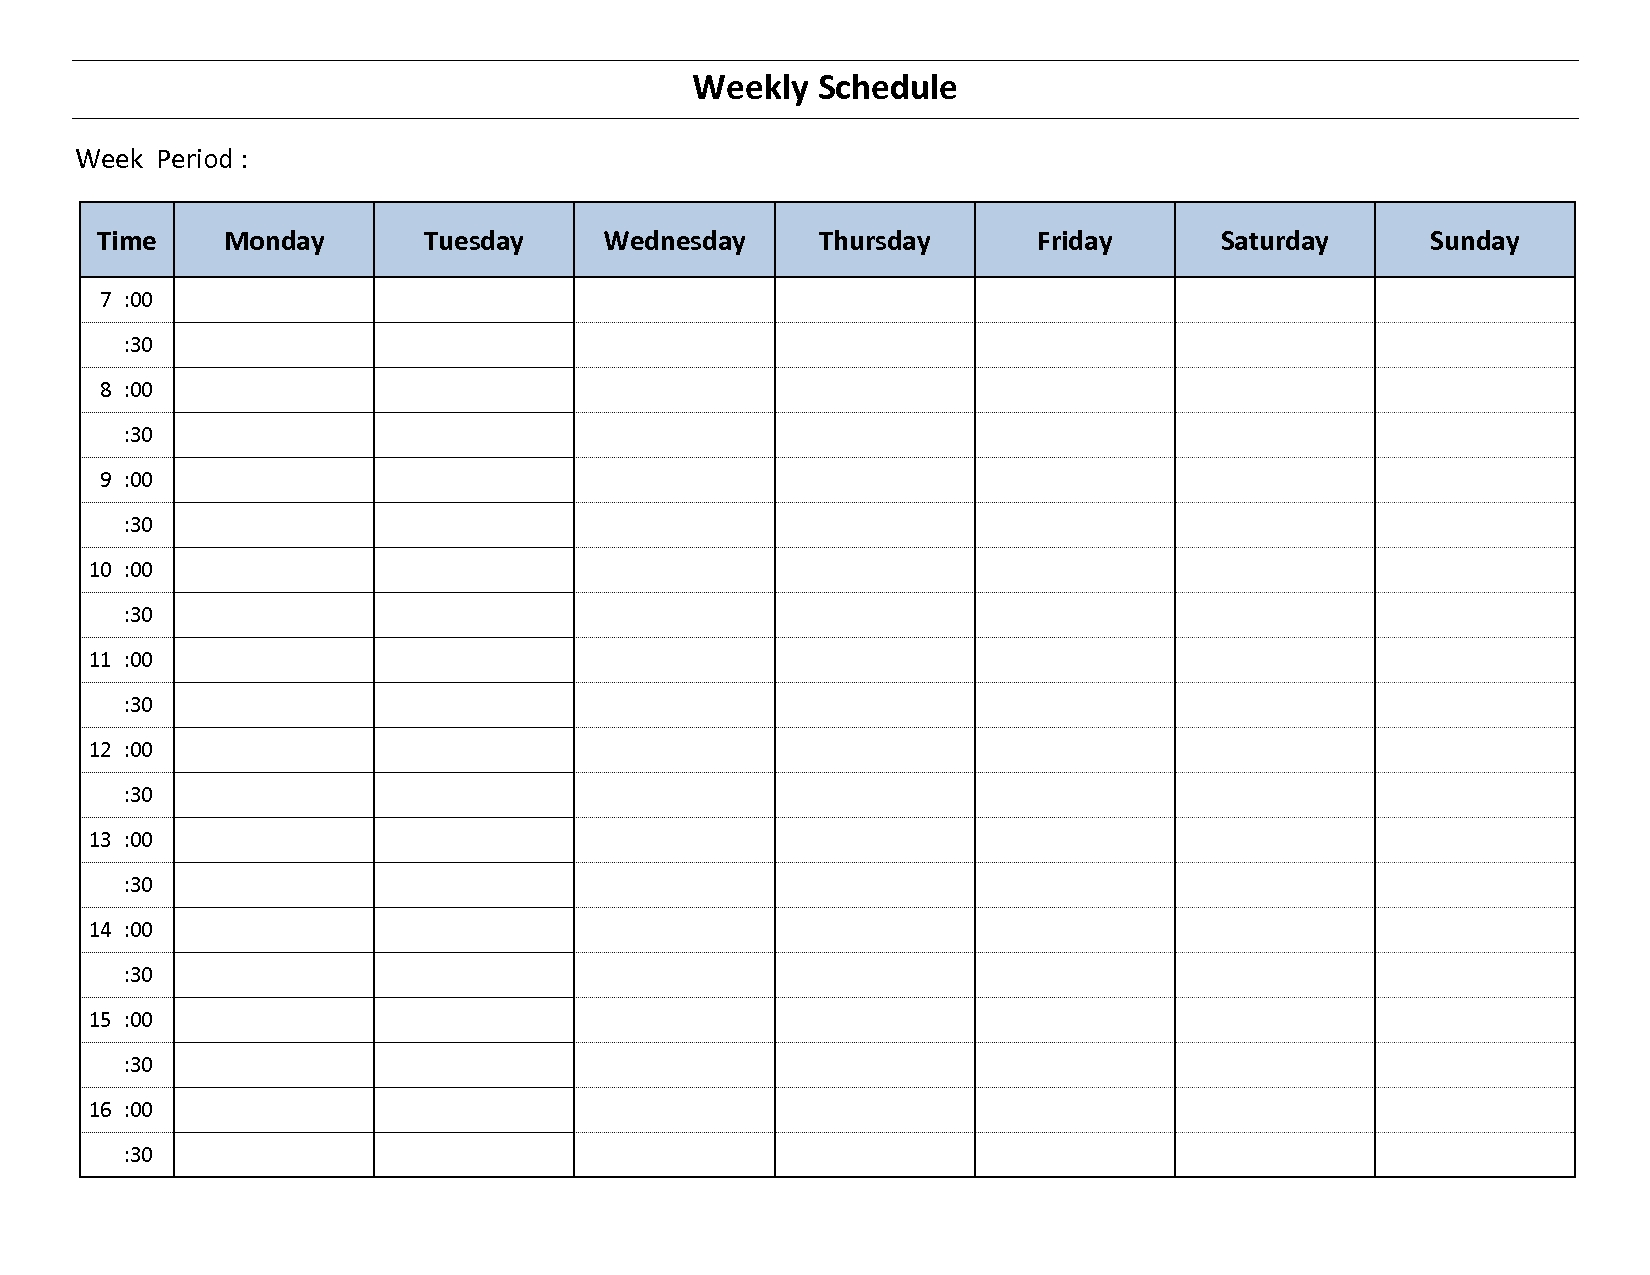 Top 5 Resources To Get Free Weekly Schedule Templates - Word Templates, Excel Templates